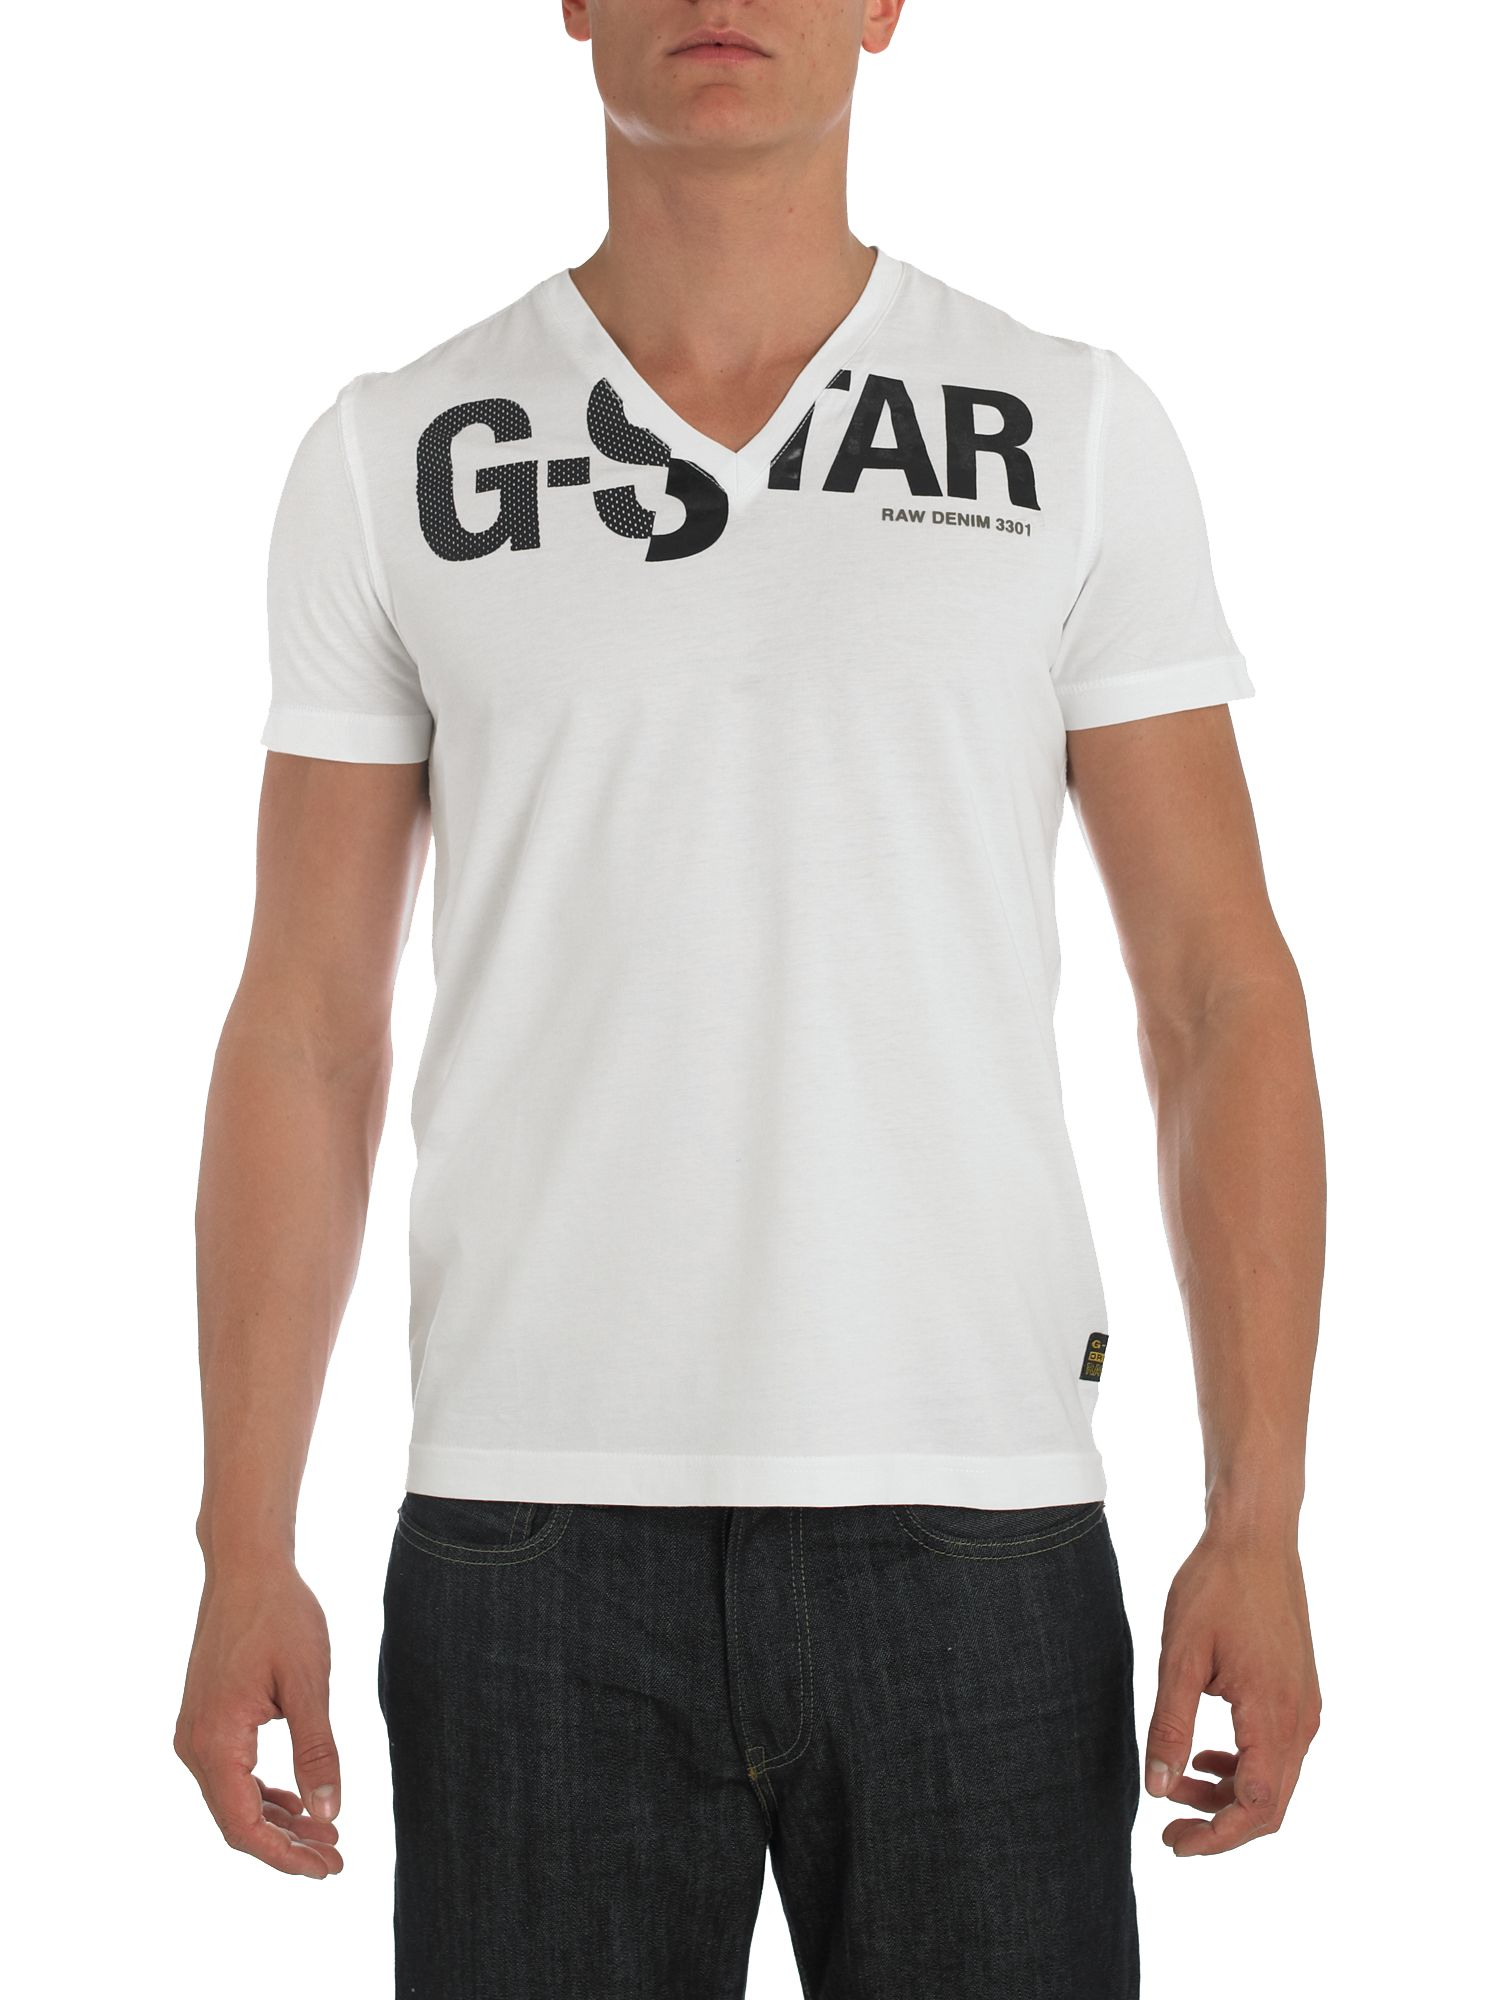 G-Star Short sleeve v-neck logo t-shirt product image